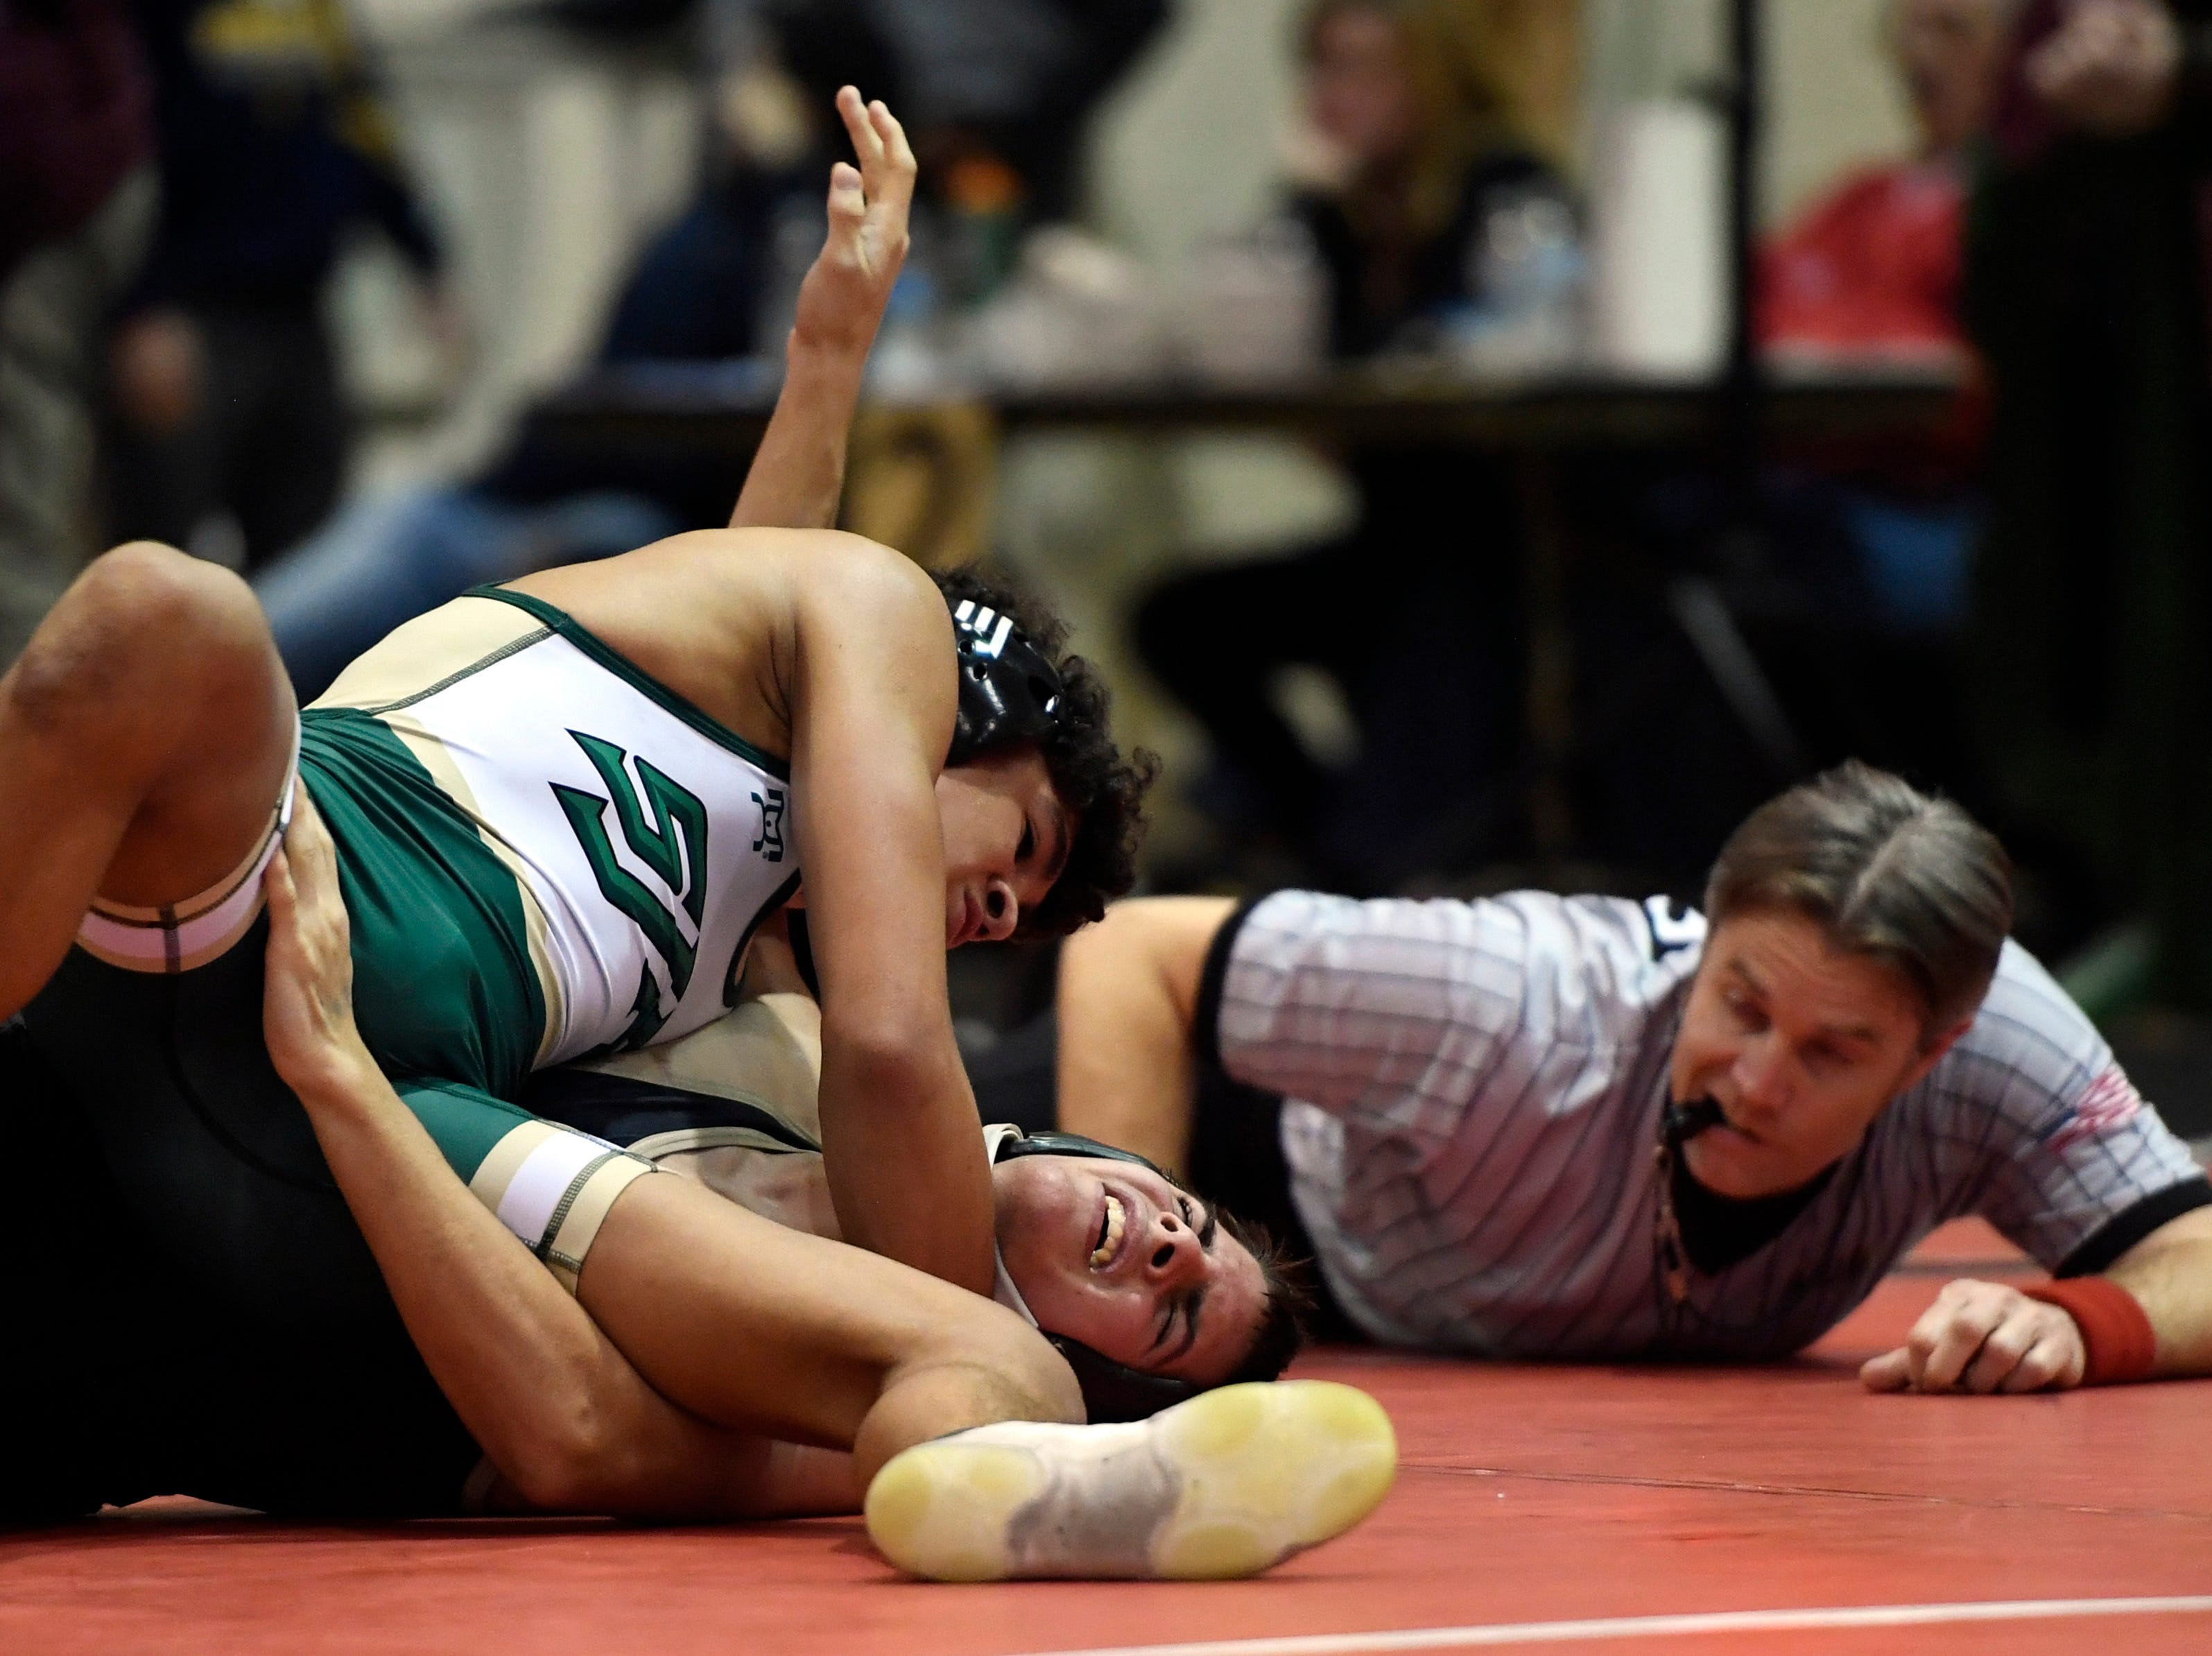 Sammy Alvarez of St. Joseph defeats Chris Lydon of Paramus Catholic in a 132-pound quarterfinal match on Day 1 of the BCCA holiday wrestling tournament on Thursday, Dec. 27, 2018, in Hackensack.